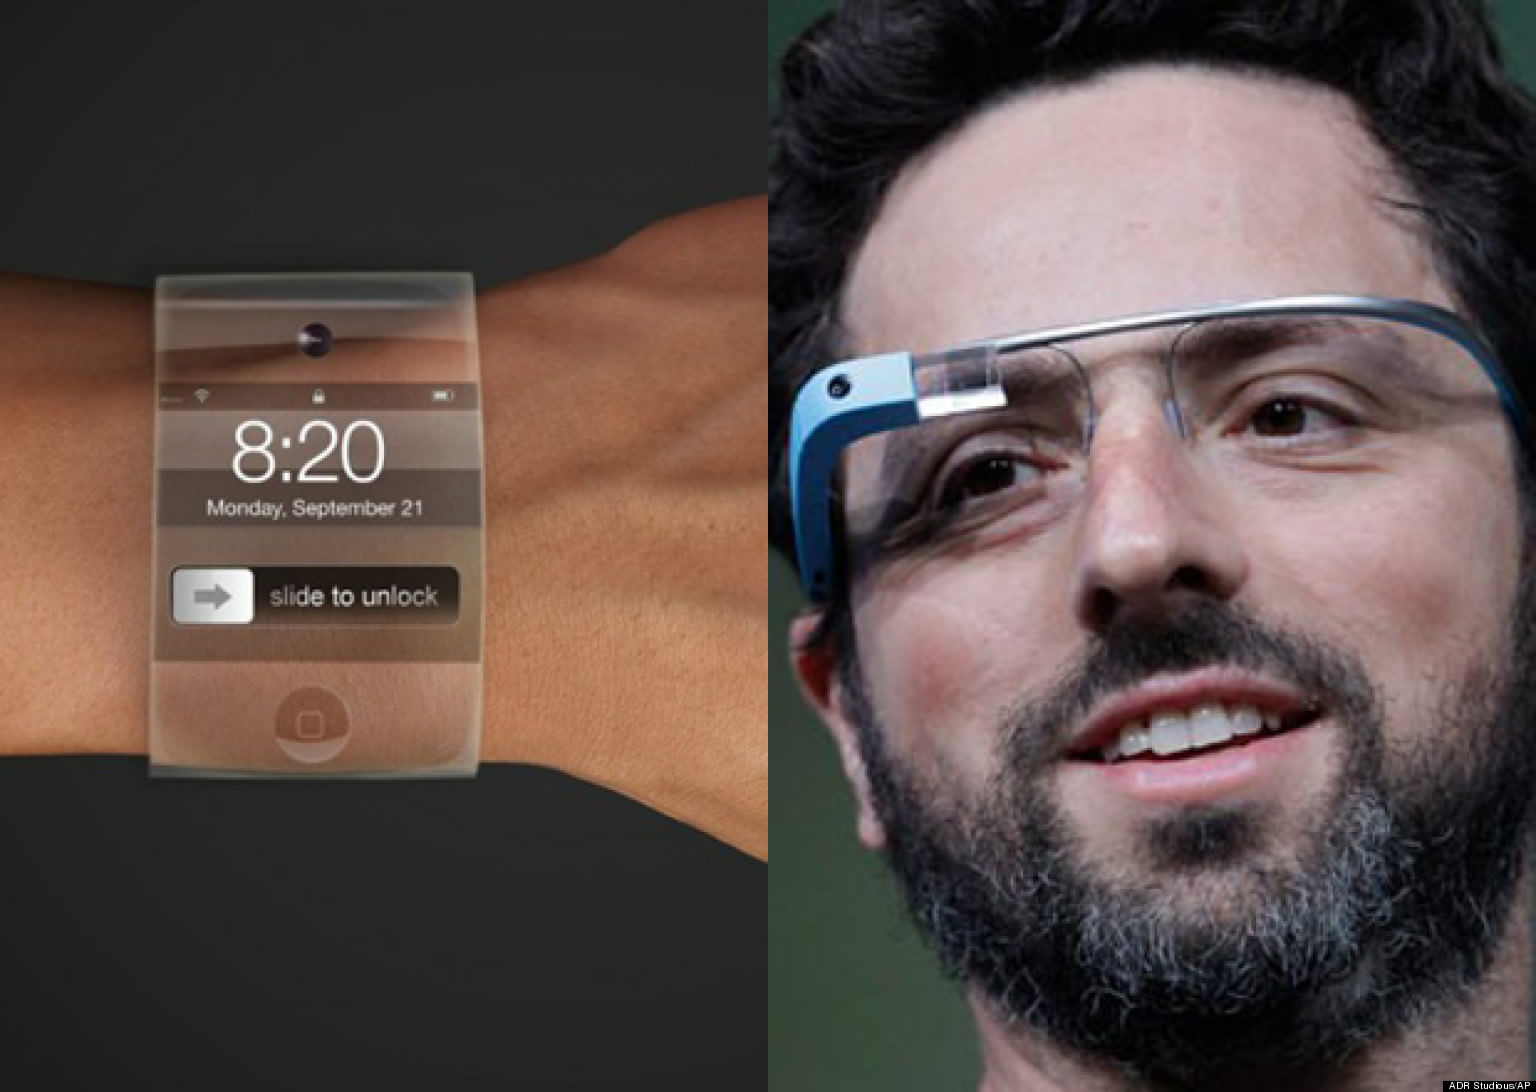 http://www.sellcell.com/blog/wp-content/uploads/2013/07/google-glass-price.jpg